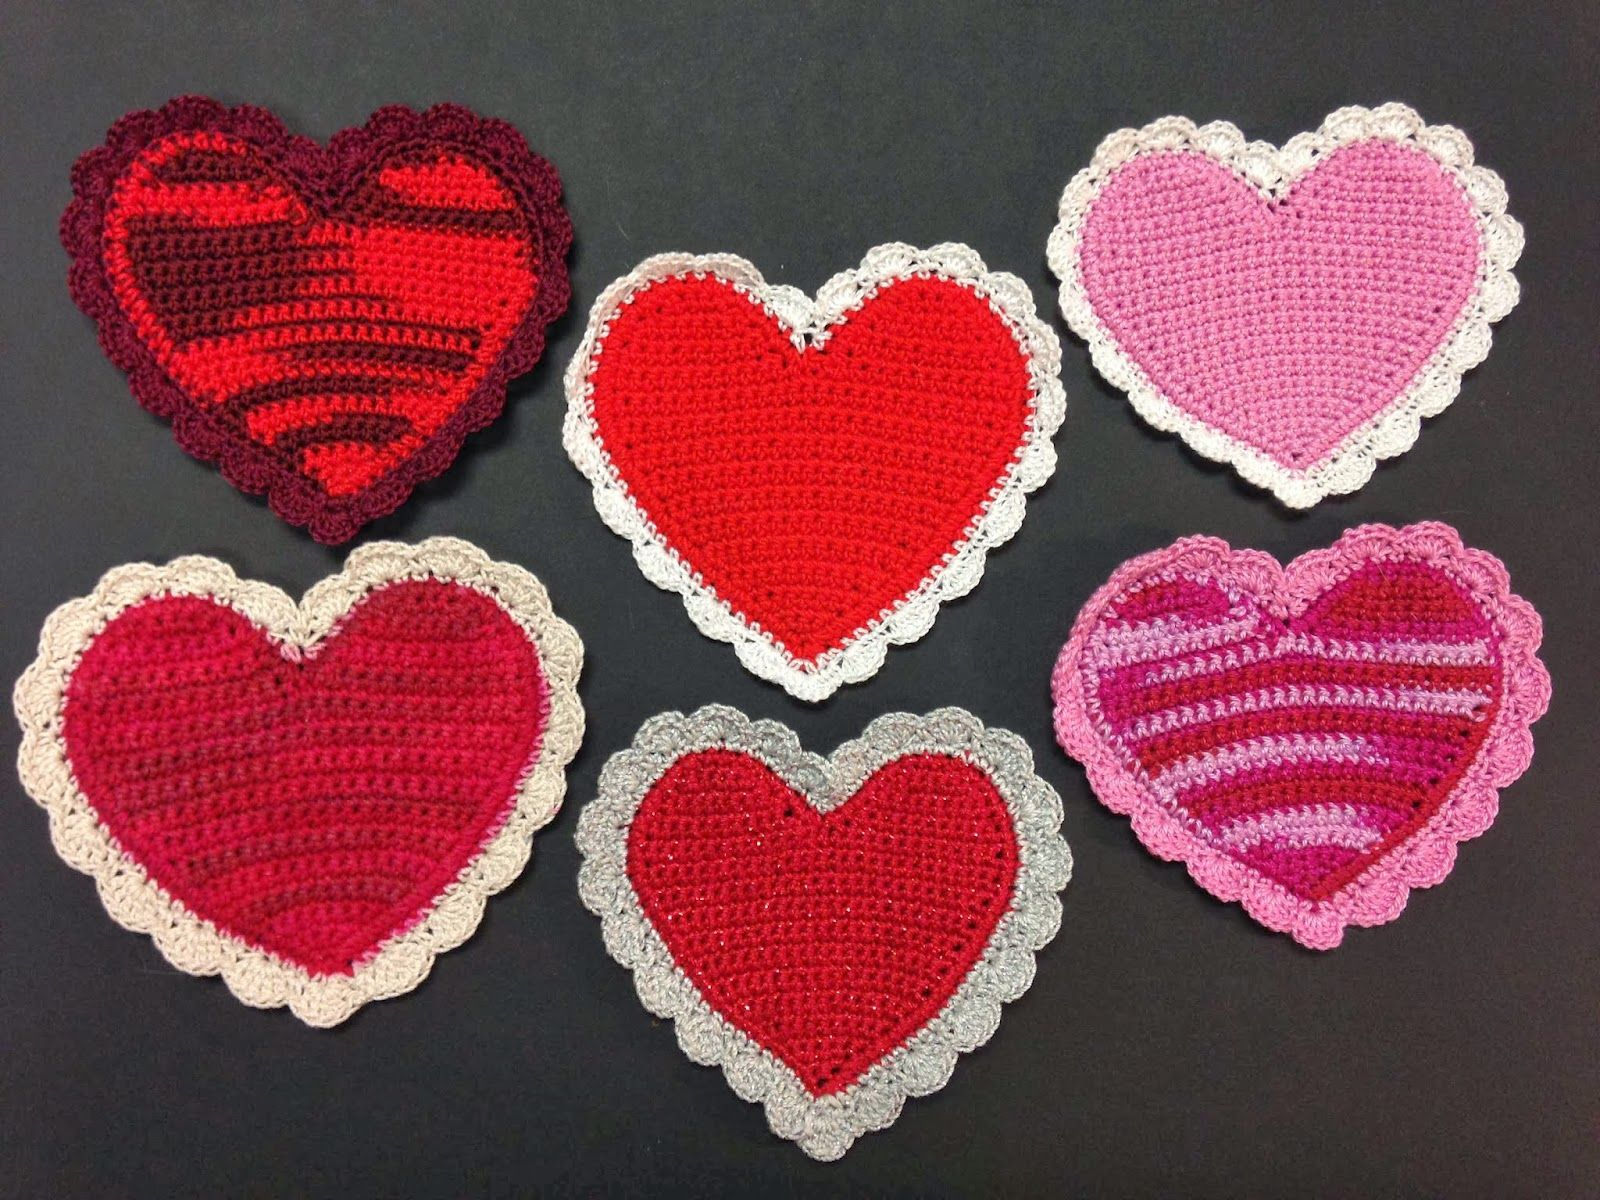 Some of the crocheted hearts can look wonky, but I love these from ...